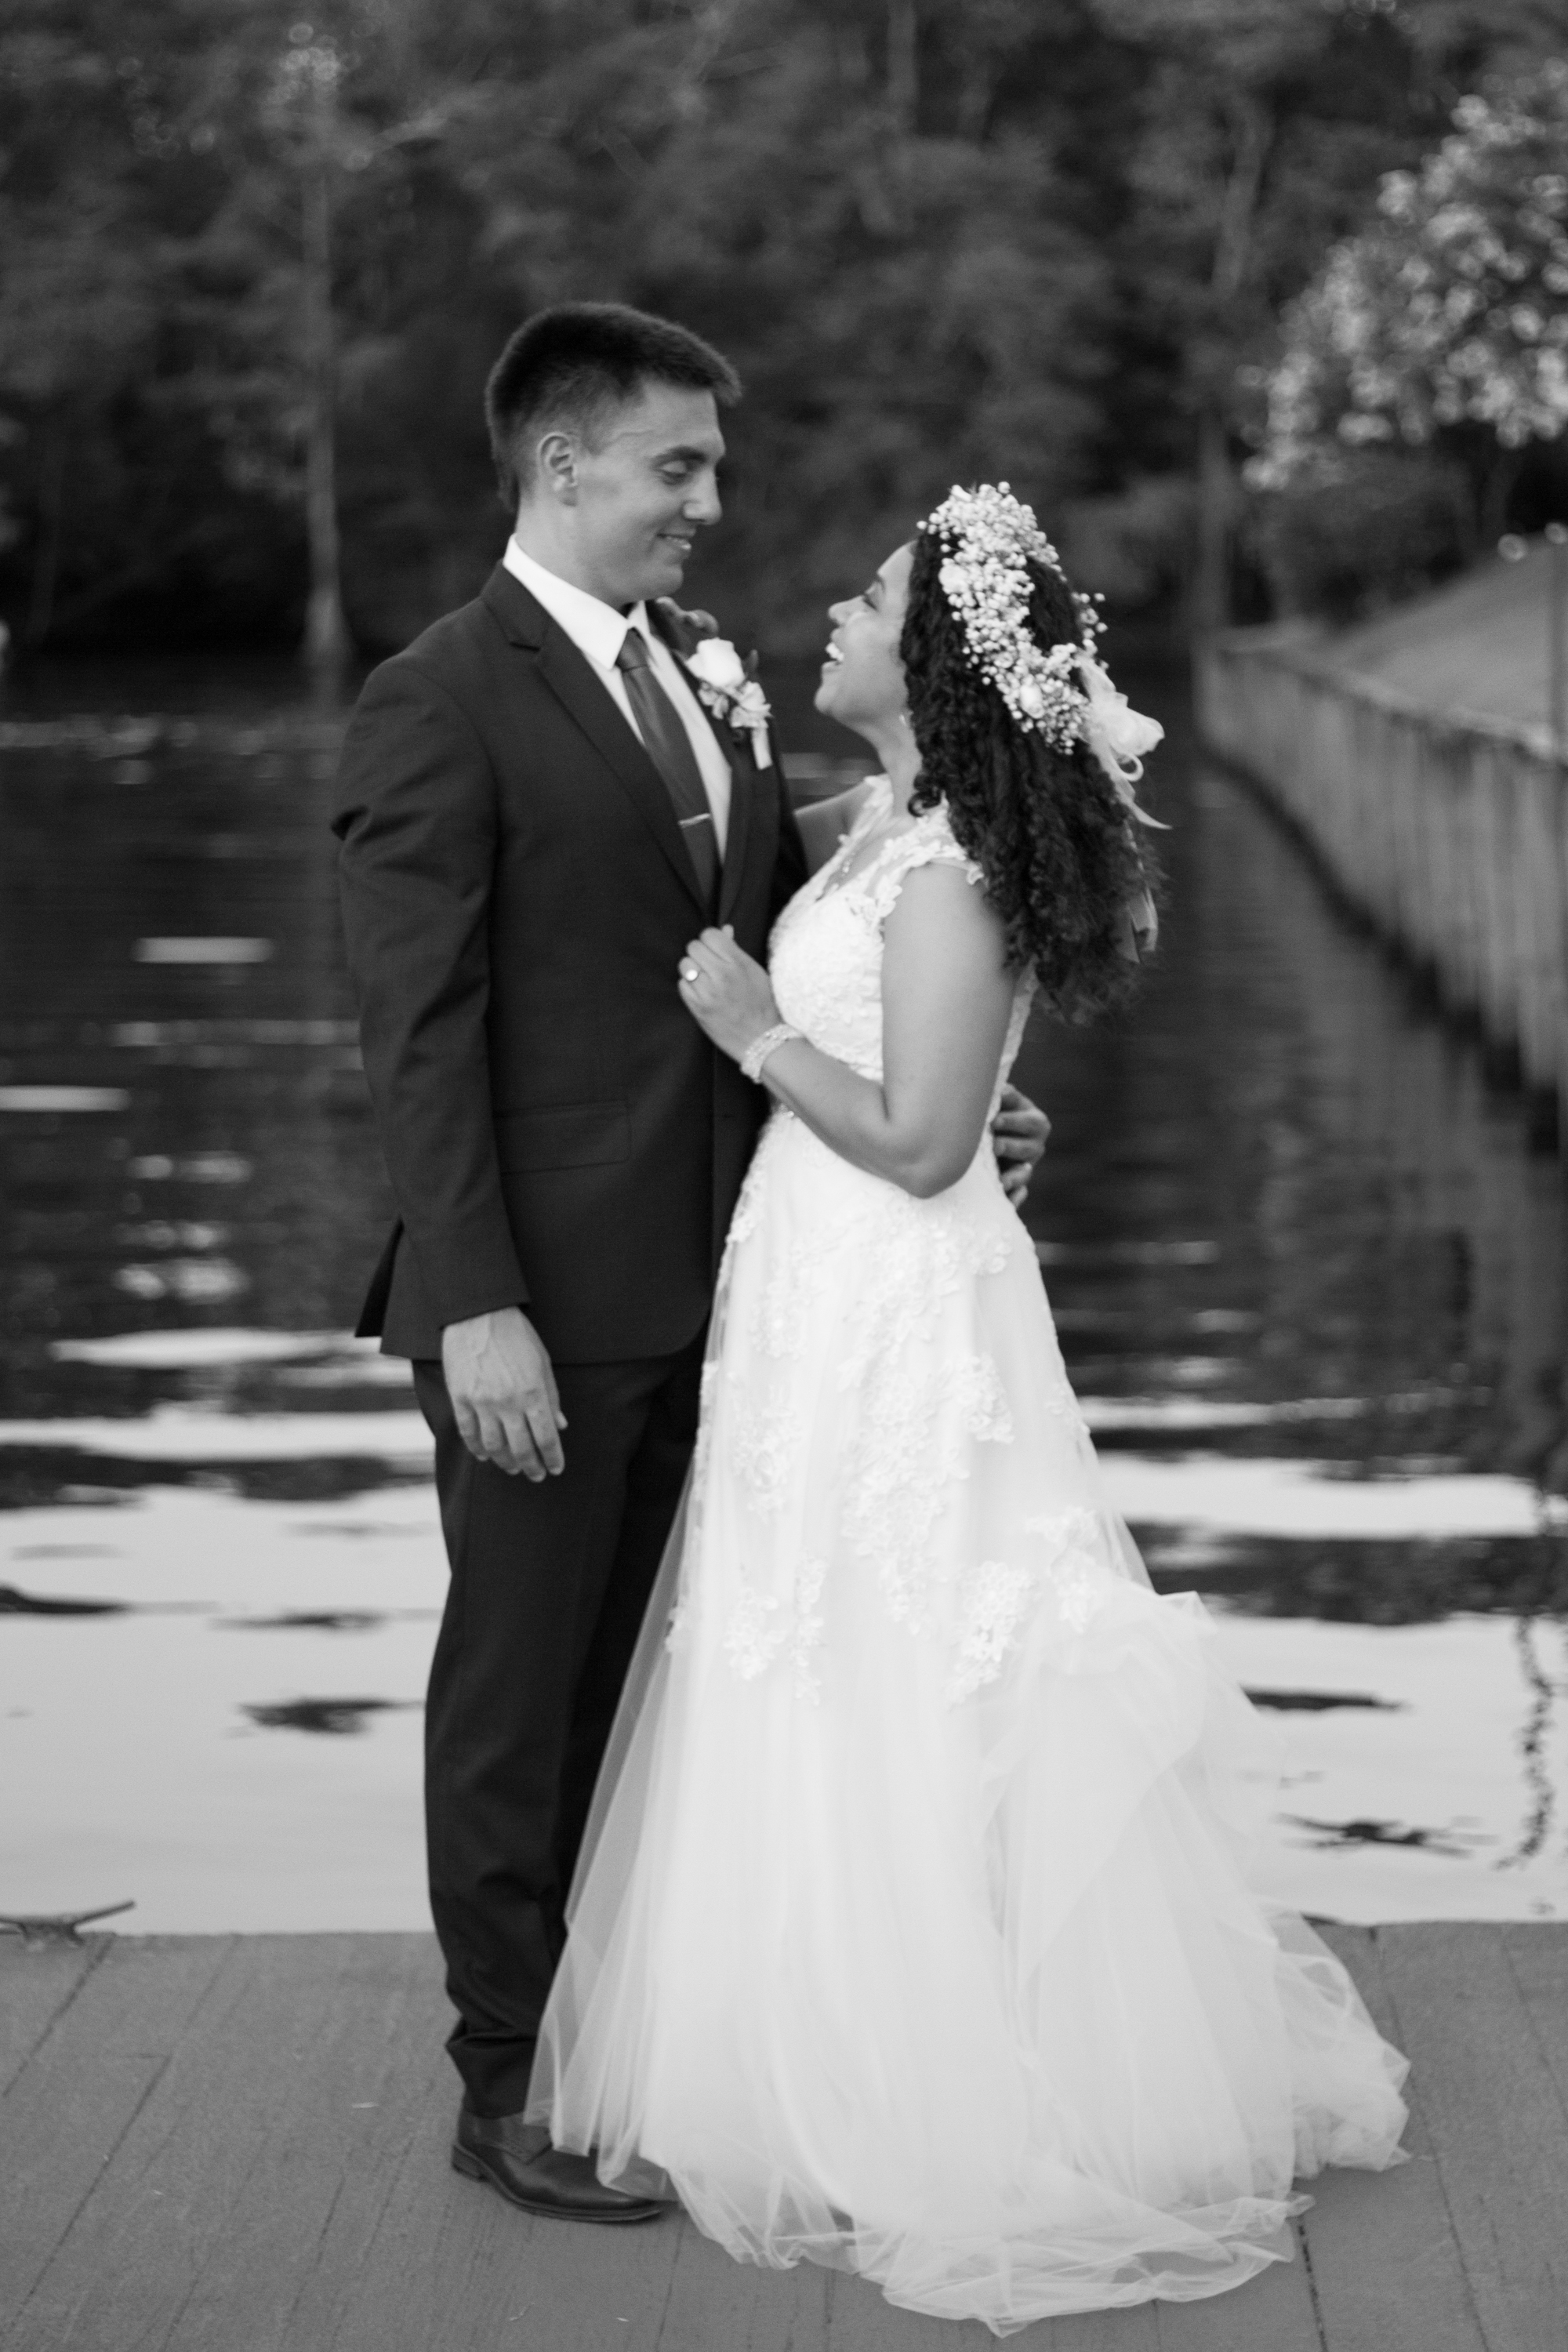 Cathy and Chris Wedding Photos - Black and White - by Brittany Castillo Meadow Portraits (12 of 21).jpg